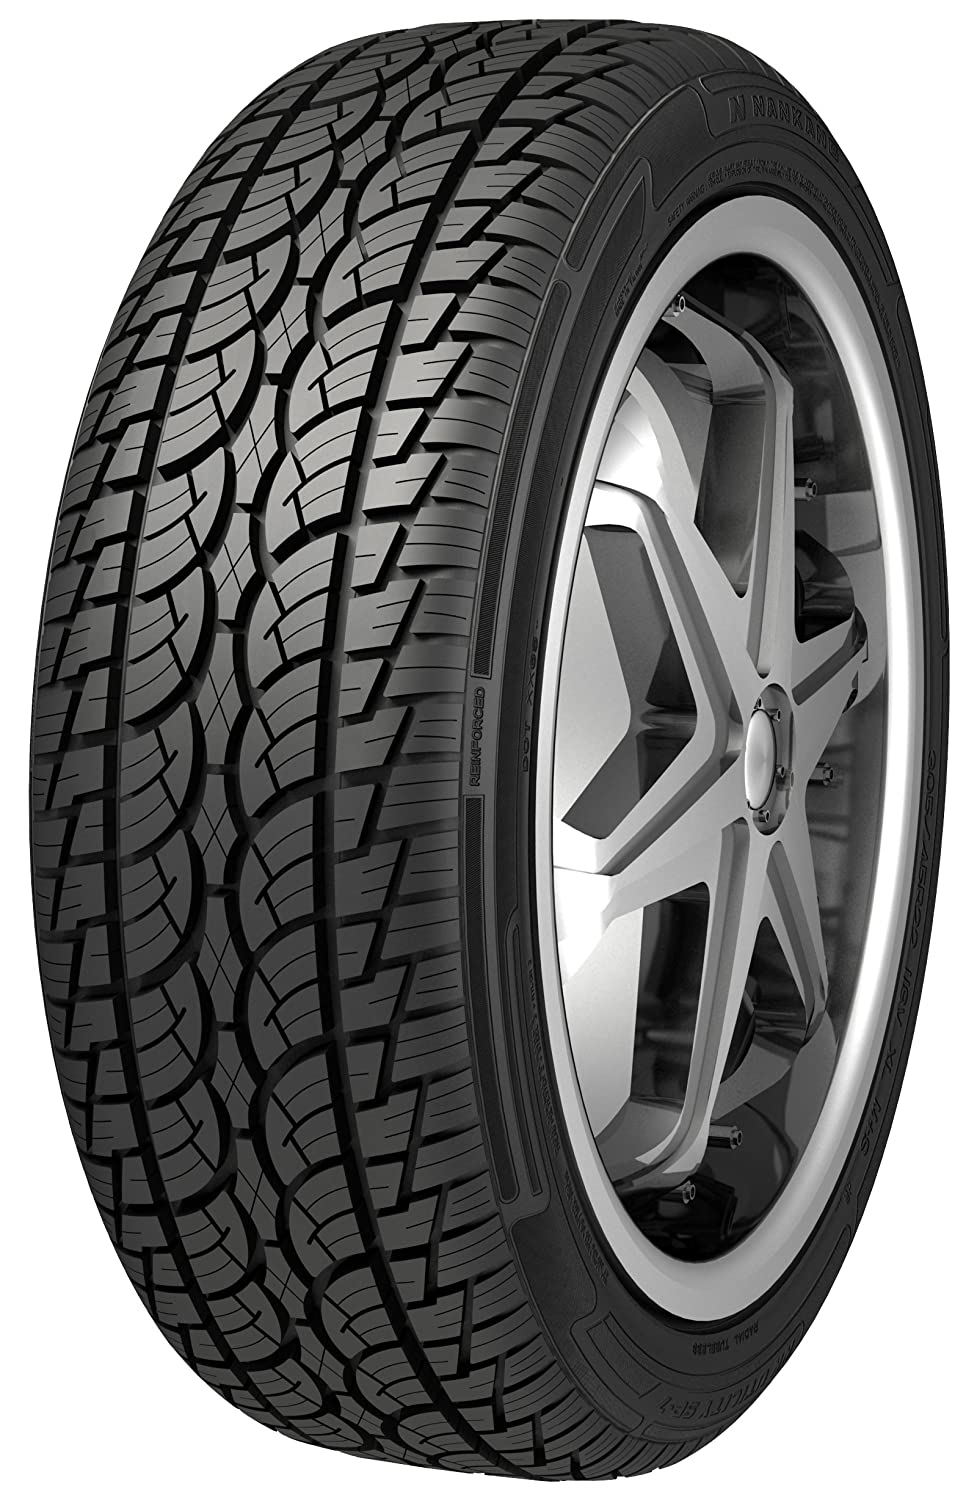 305//40R22 114V Nankang SP-7 Radial Tire